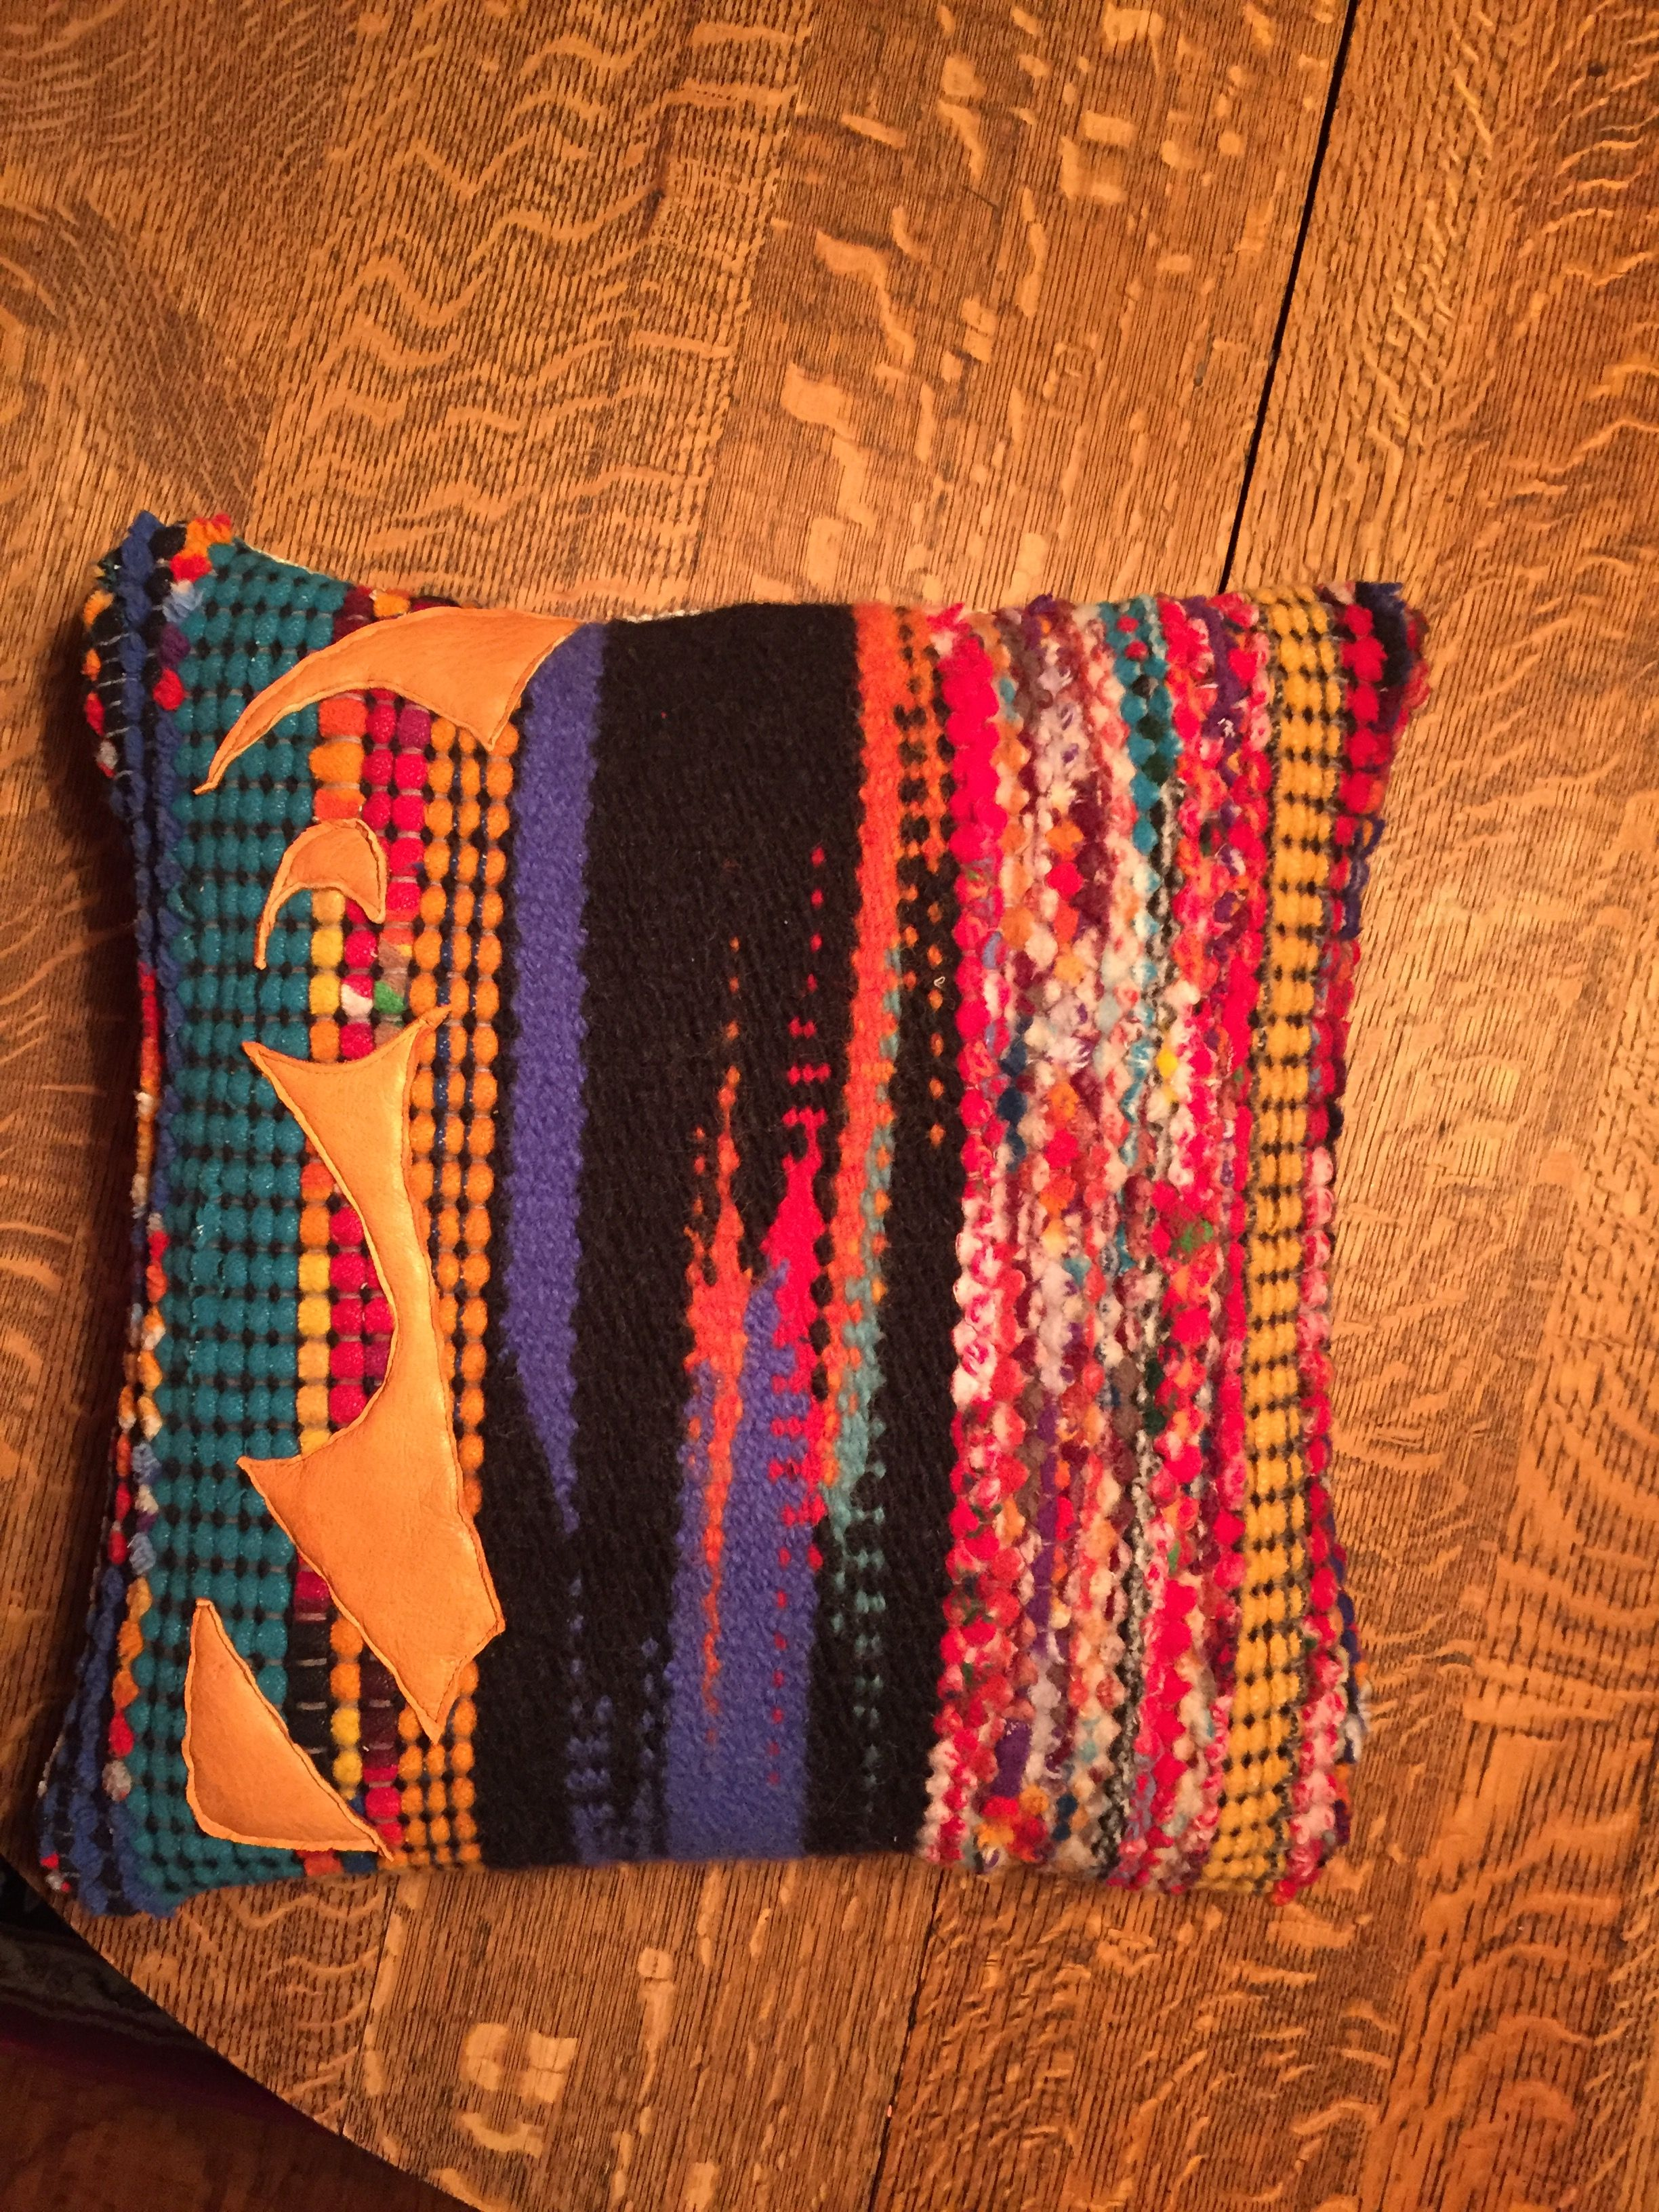 Handwoven Pendleton wool selvages with wool yarn clasped weft and recycled leather